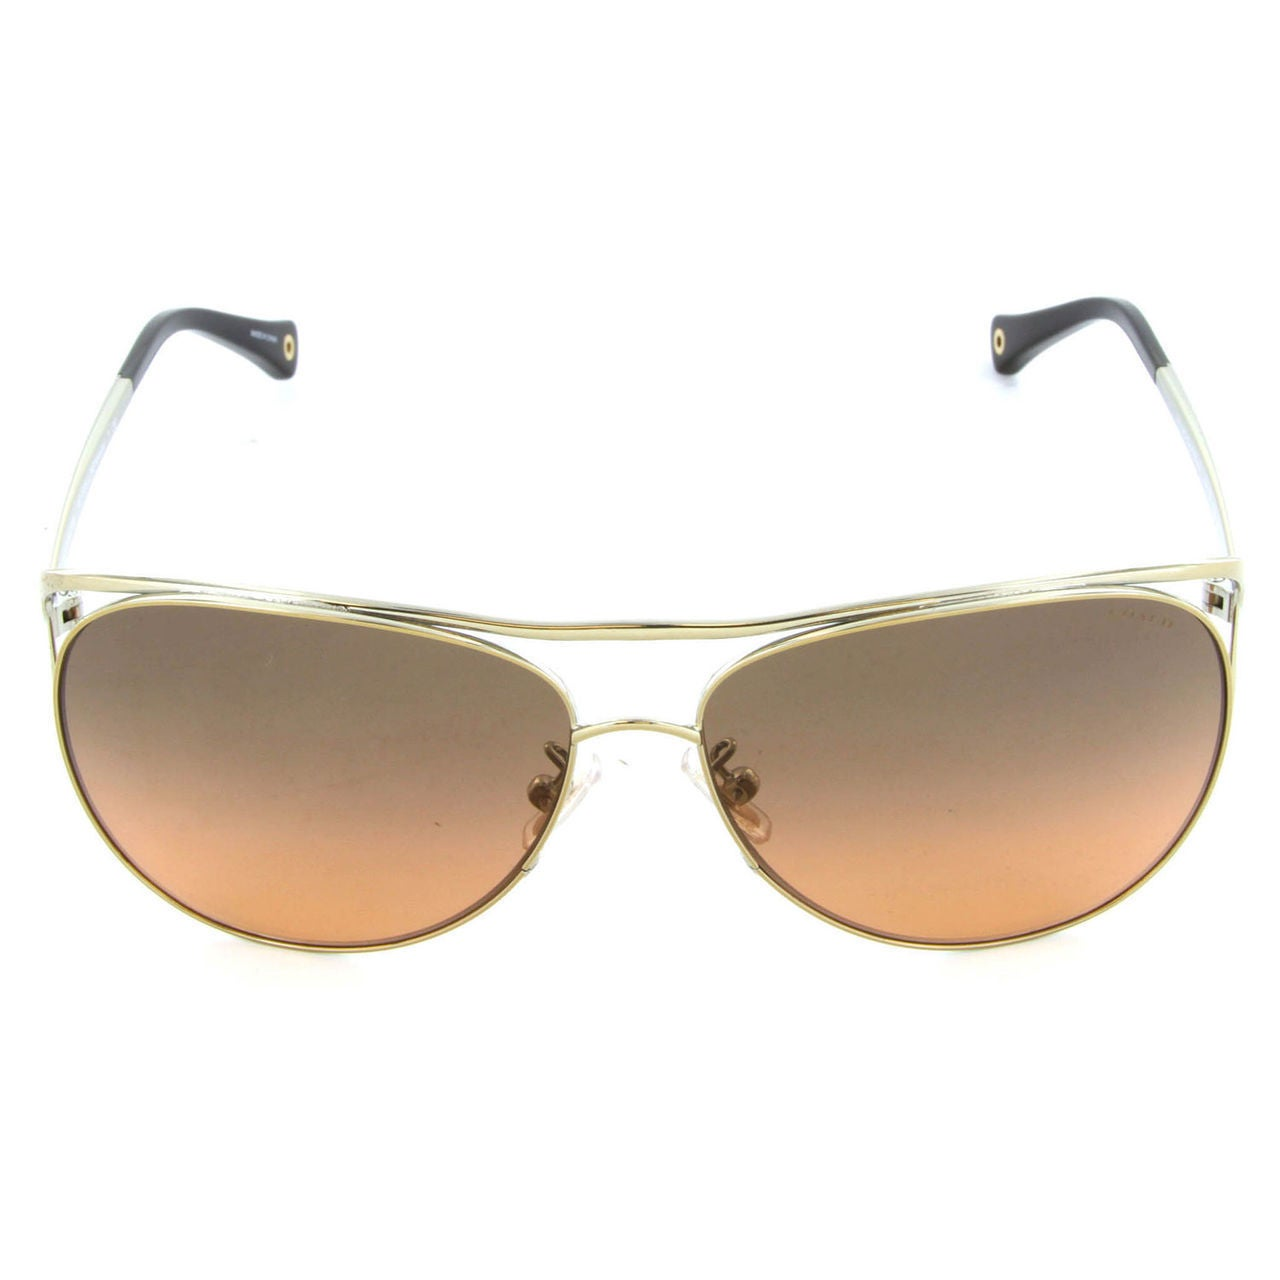 28bb6ddc7231 Shop Coach Women's HC7036 L069 Natalie 905395 Metal Pilot Sunglasses - Gold  - Free Shipping Today - Overstock - 10324906